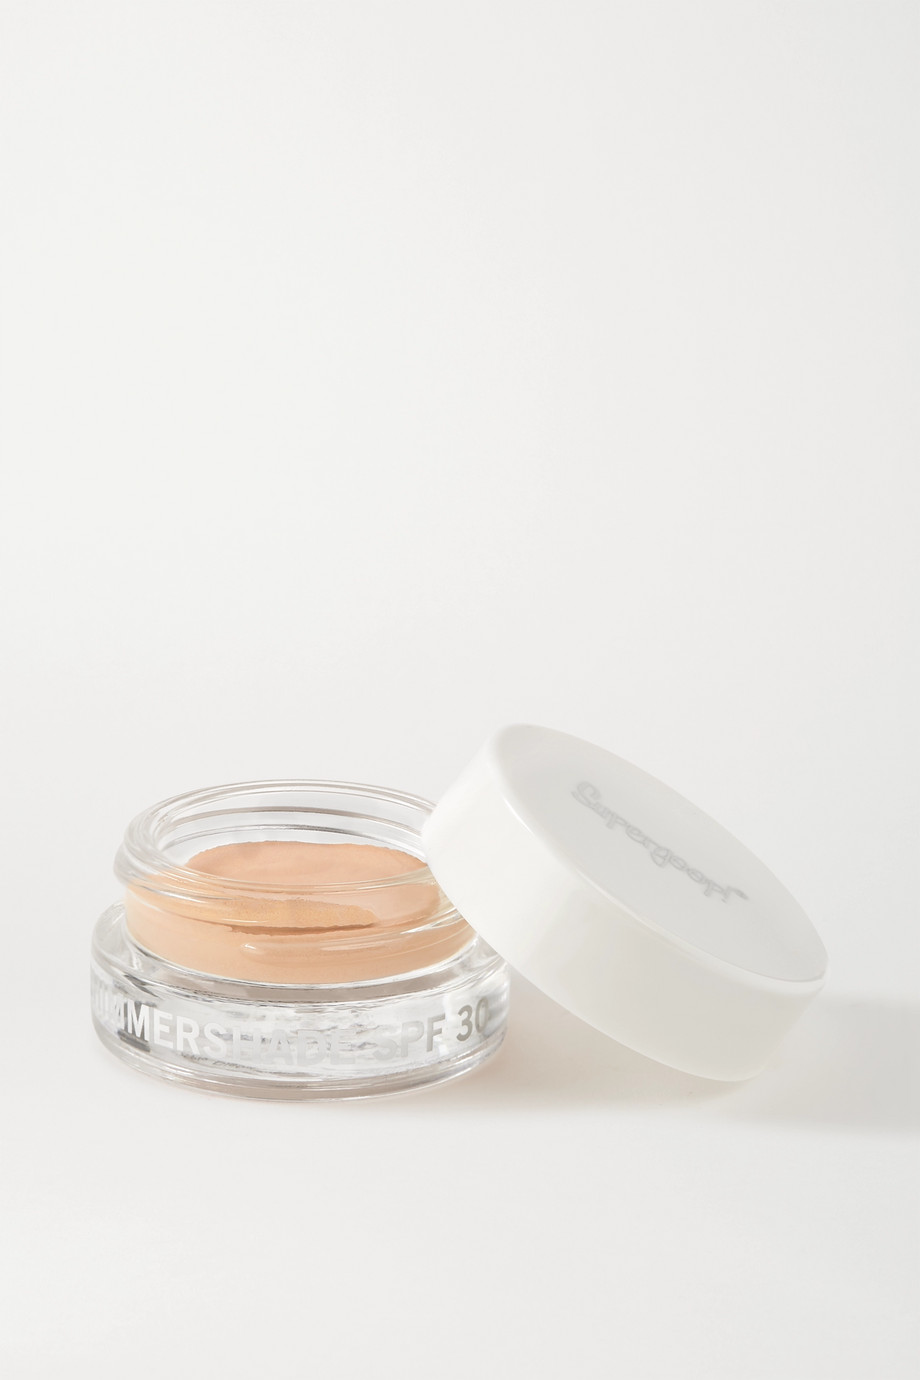 Supergoop! Shimmershade Eyeshadow SPF30 - Golden Hour